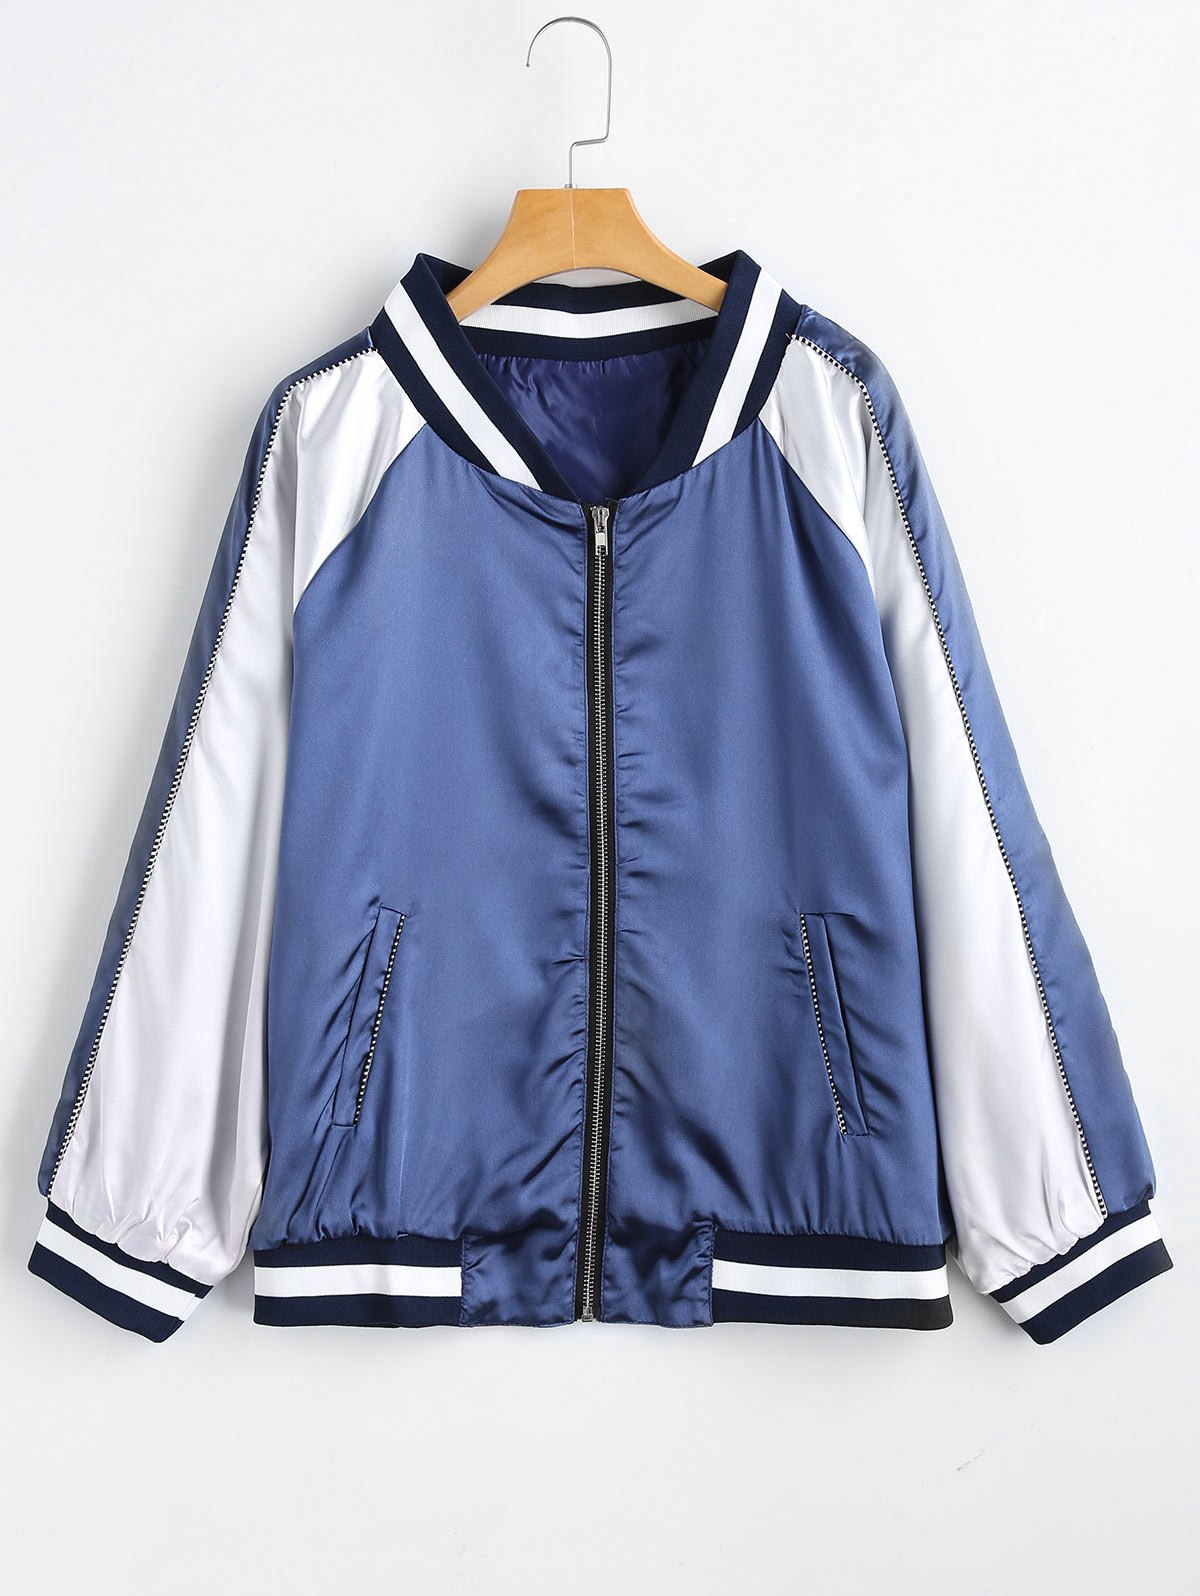 08a3b355792 2019 Plus Size Striped Zip Up Baseball Jacket